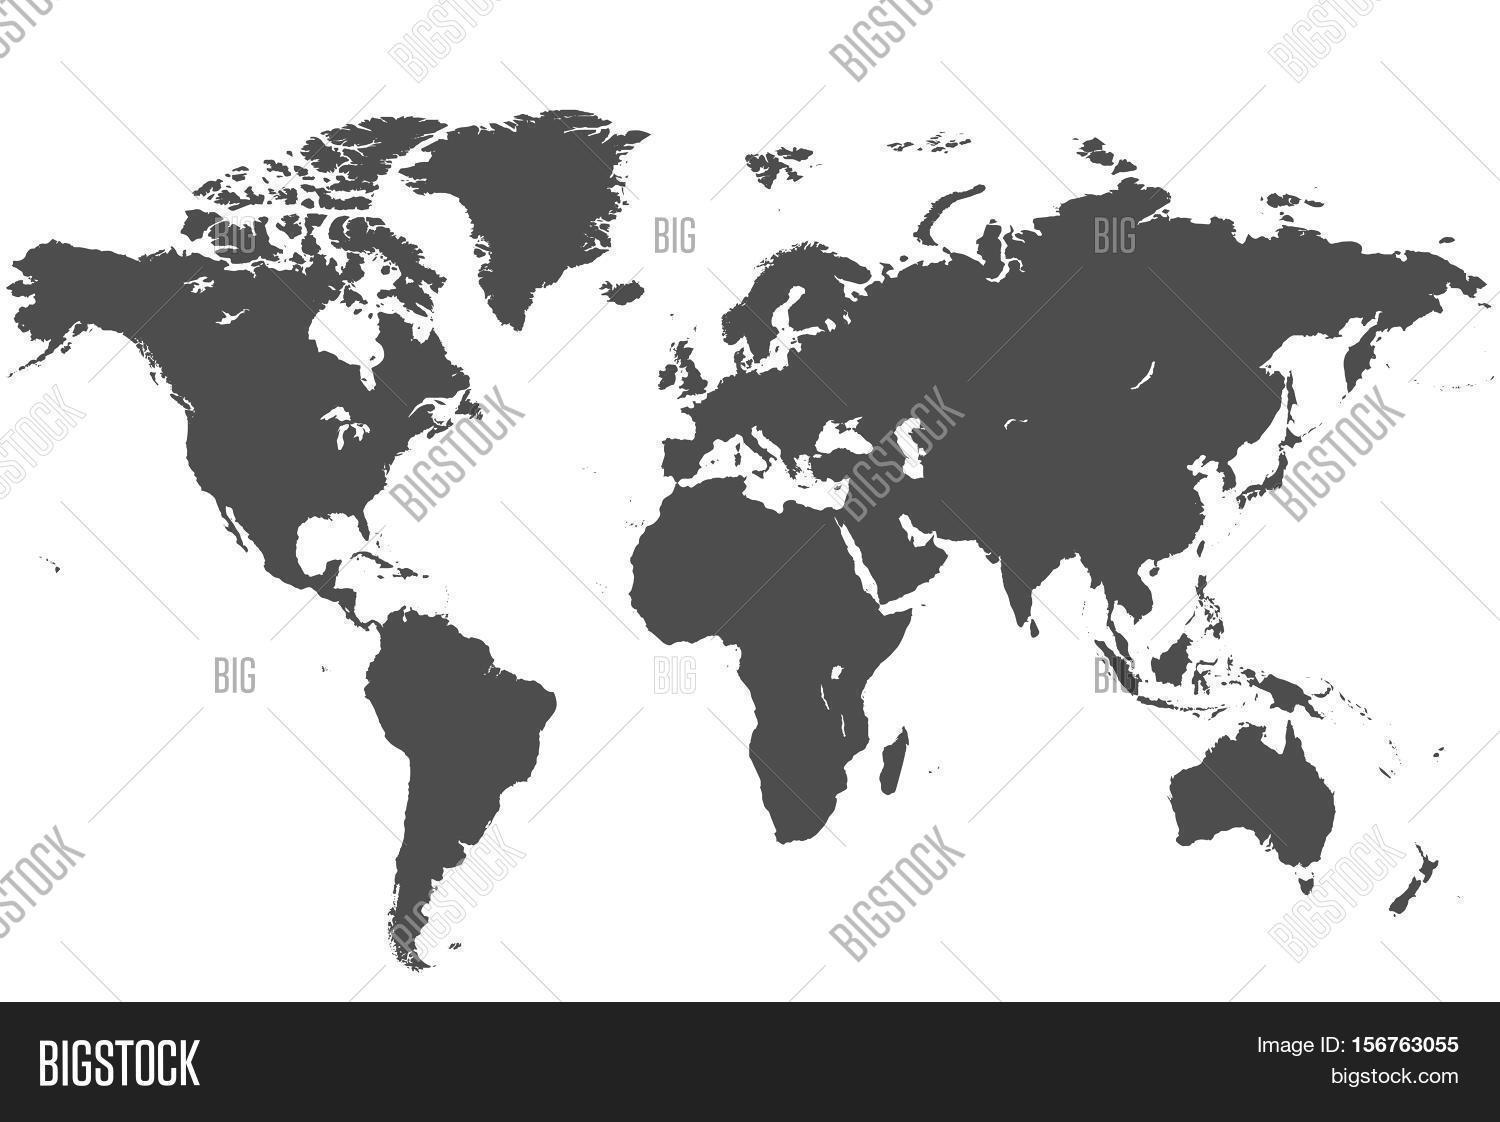 Map world world map high image photo bigstock map of the world world map high resolution in grey gumiabroncs Choice Image